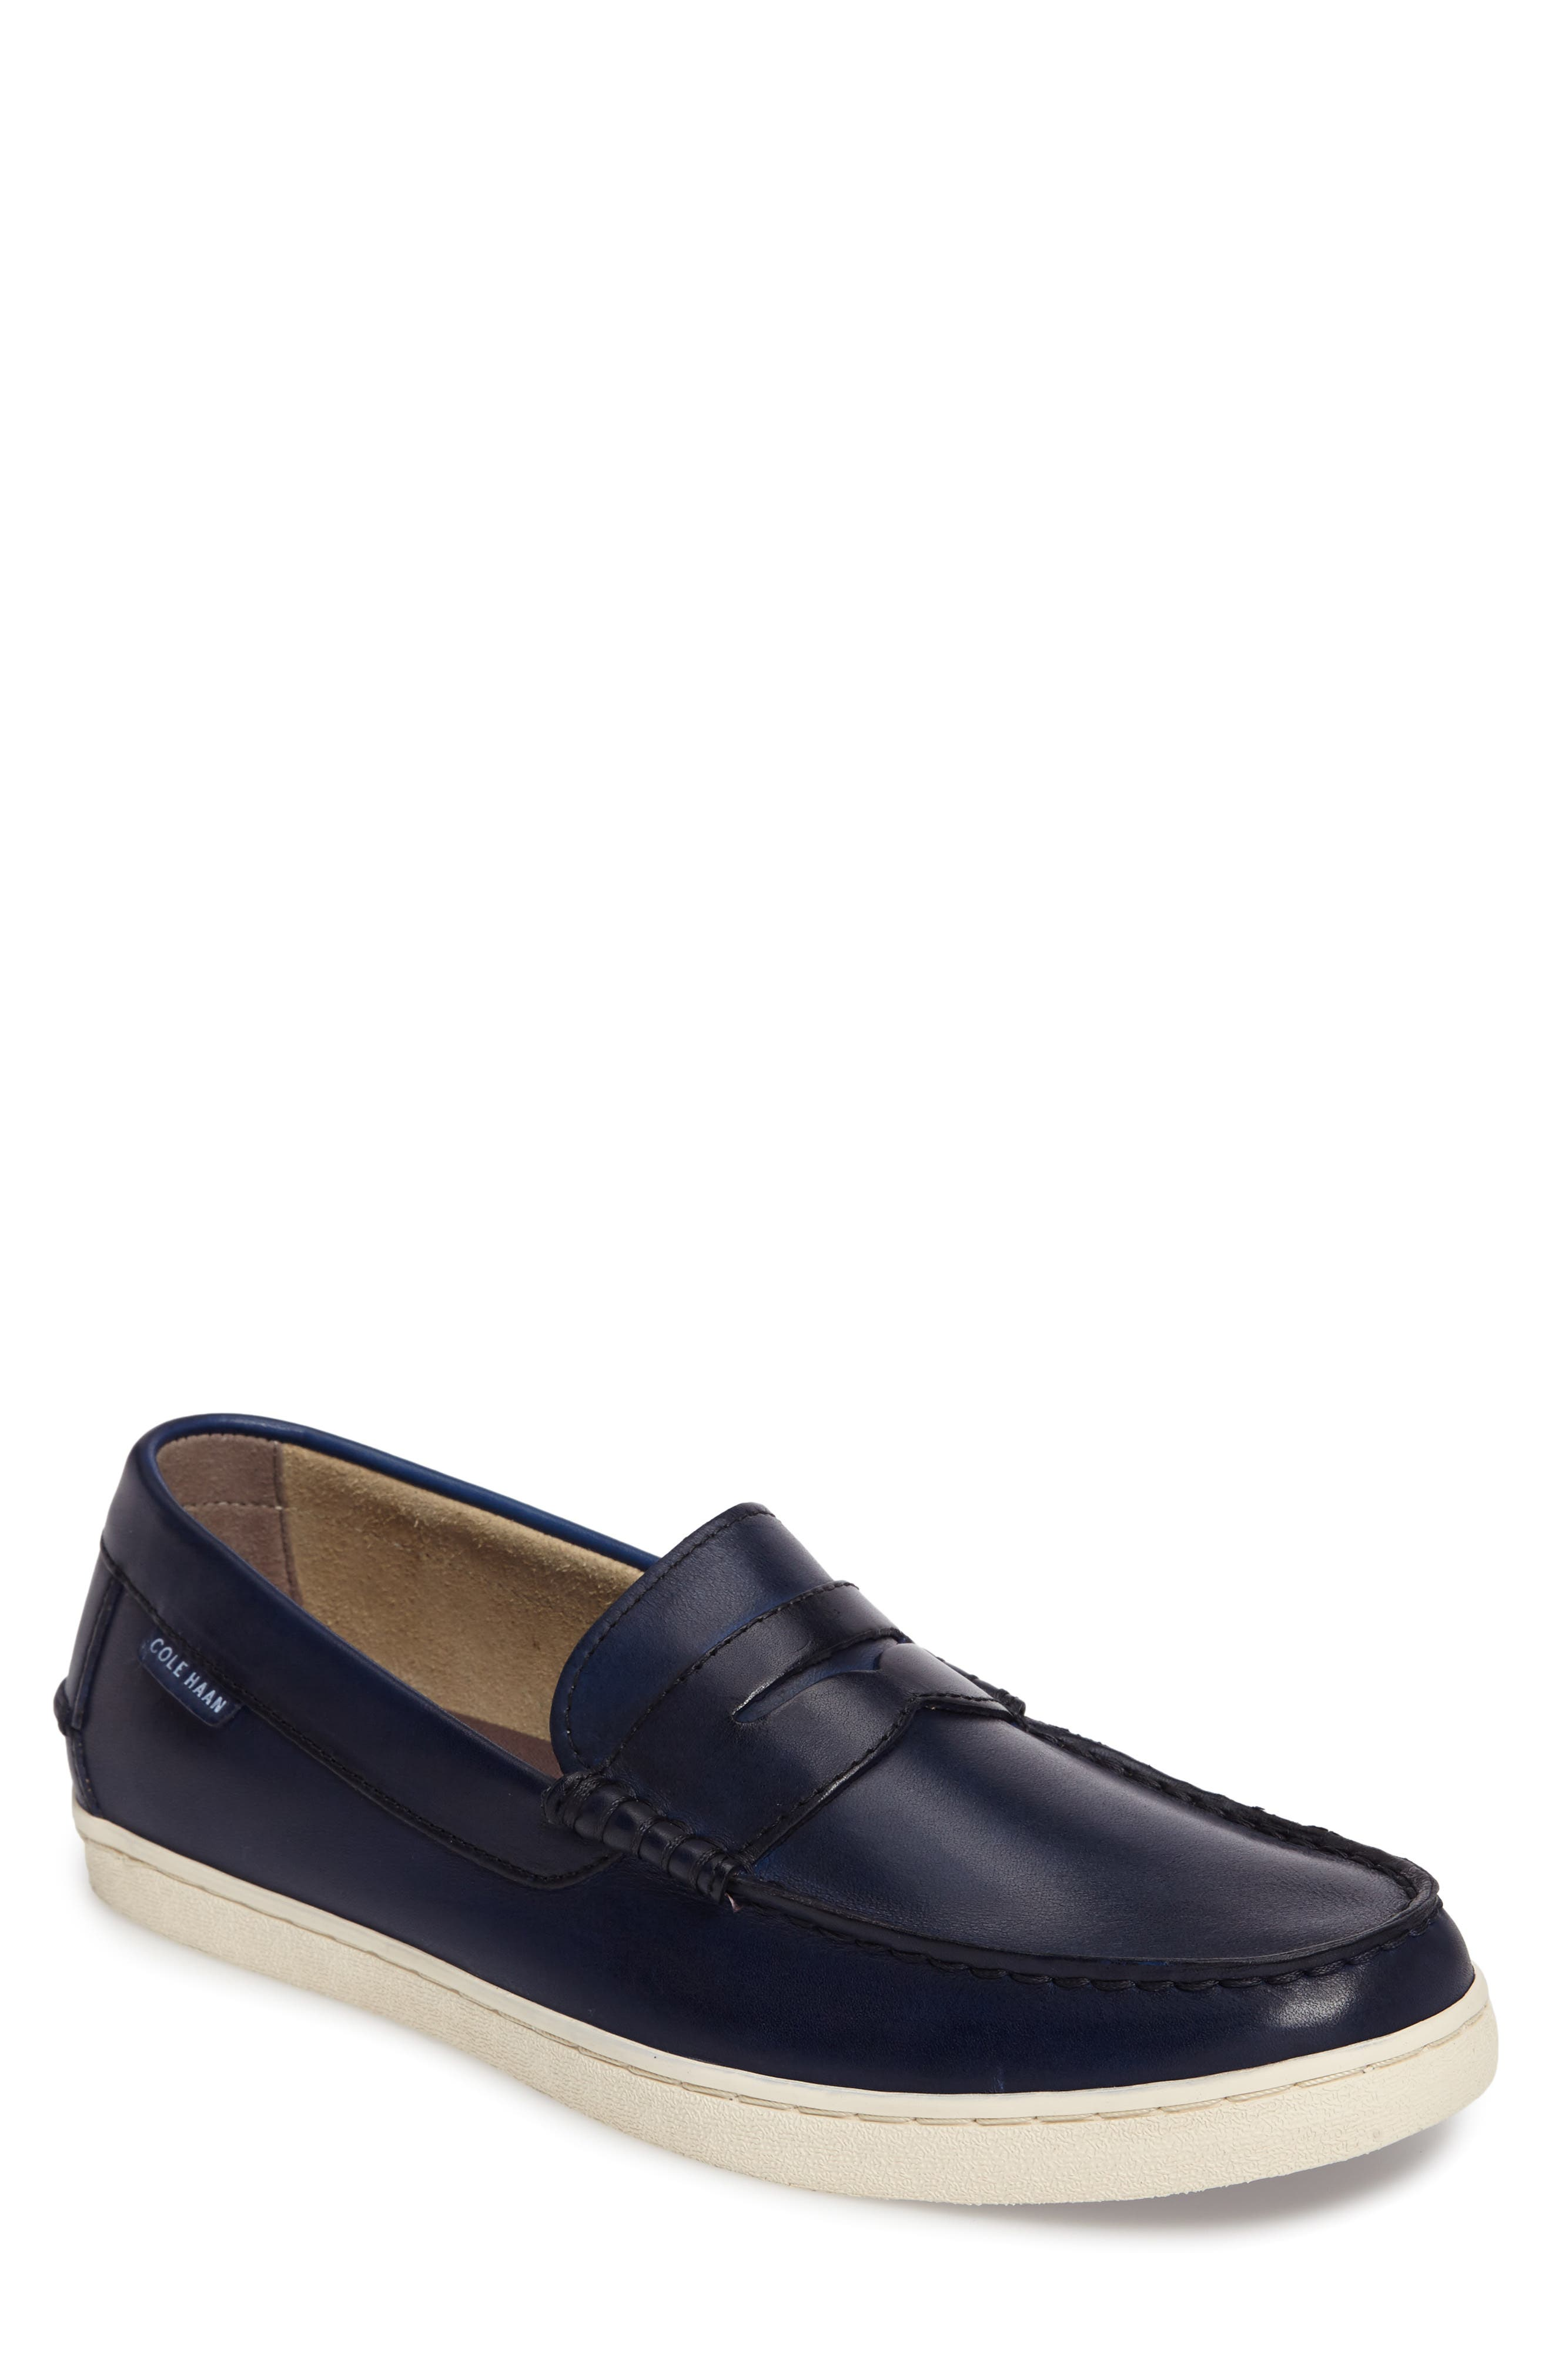 Pinch Penny Loafer,                         Main,                         color, Blazer Blue Leather